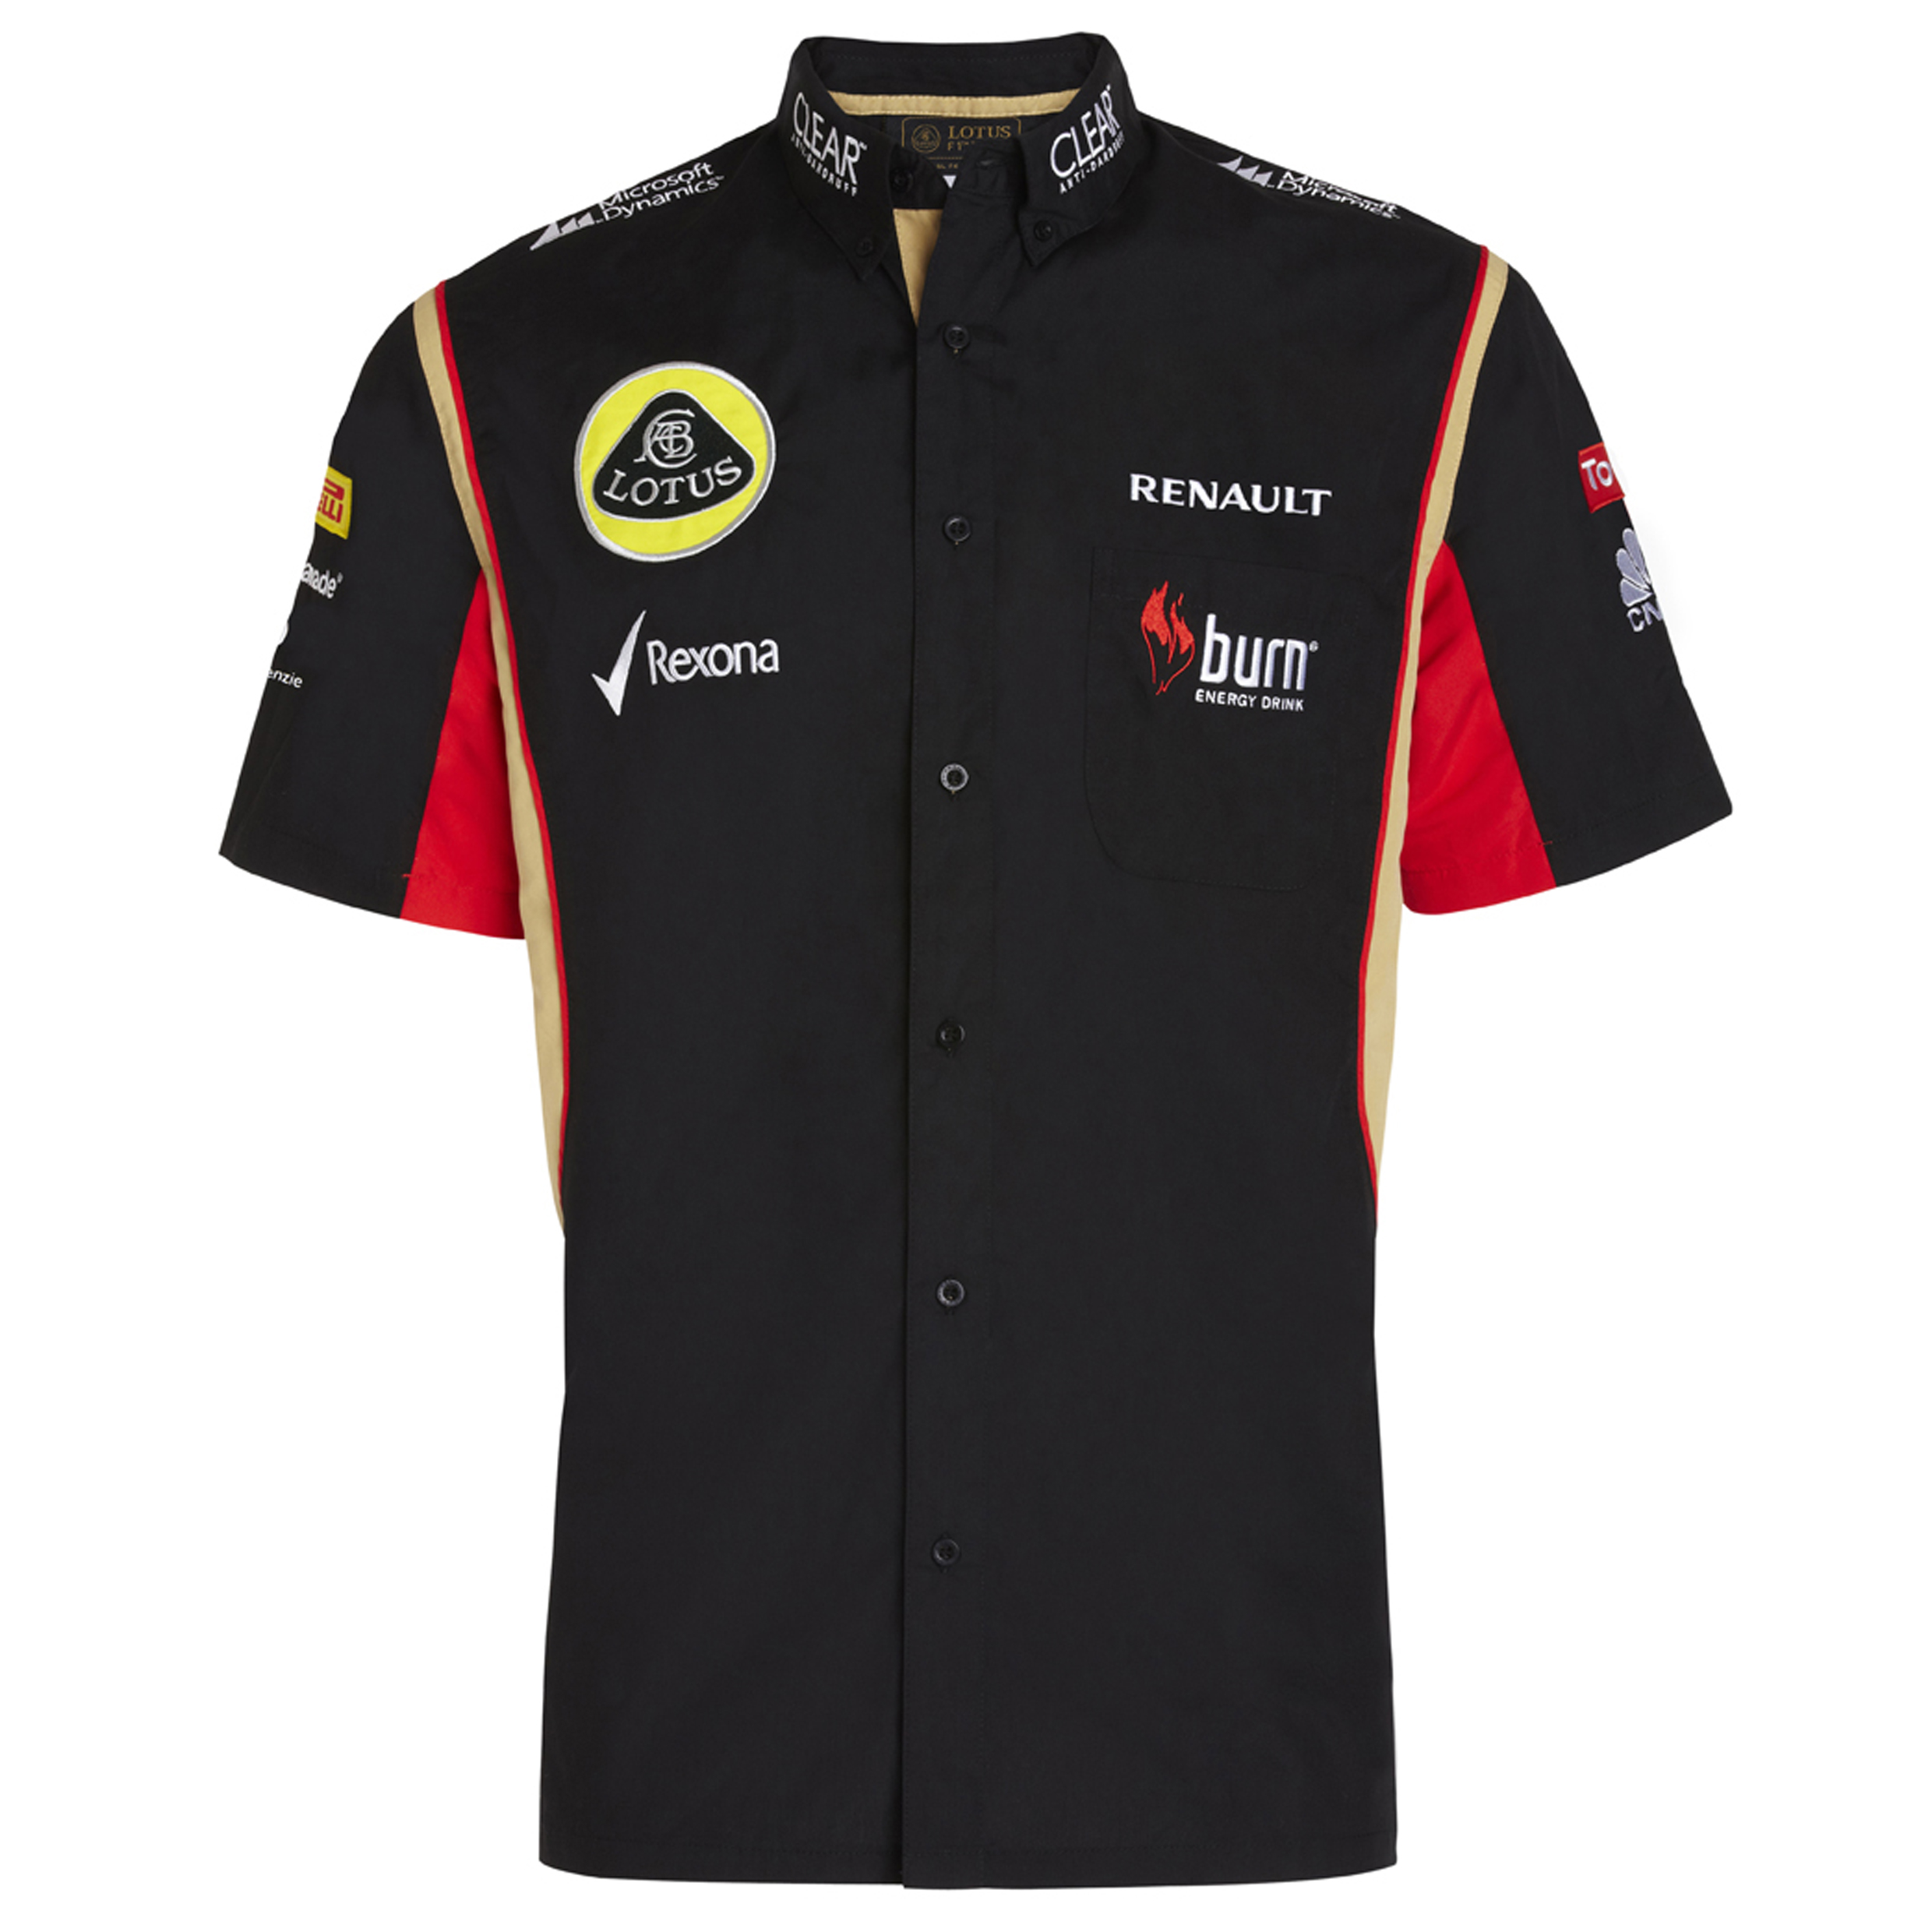 Lotus F1 Team 2013 F1 Unisex Replica Race Shirt